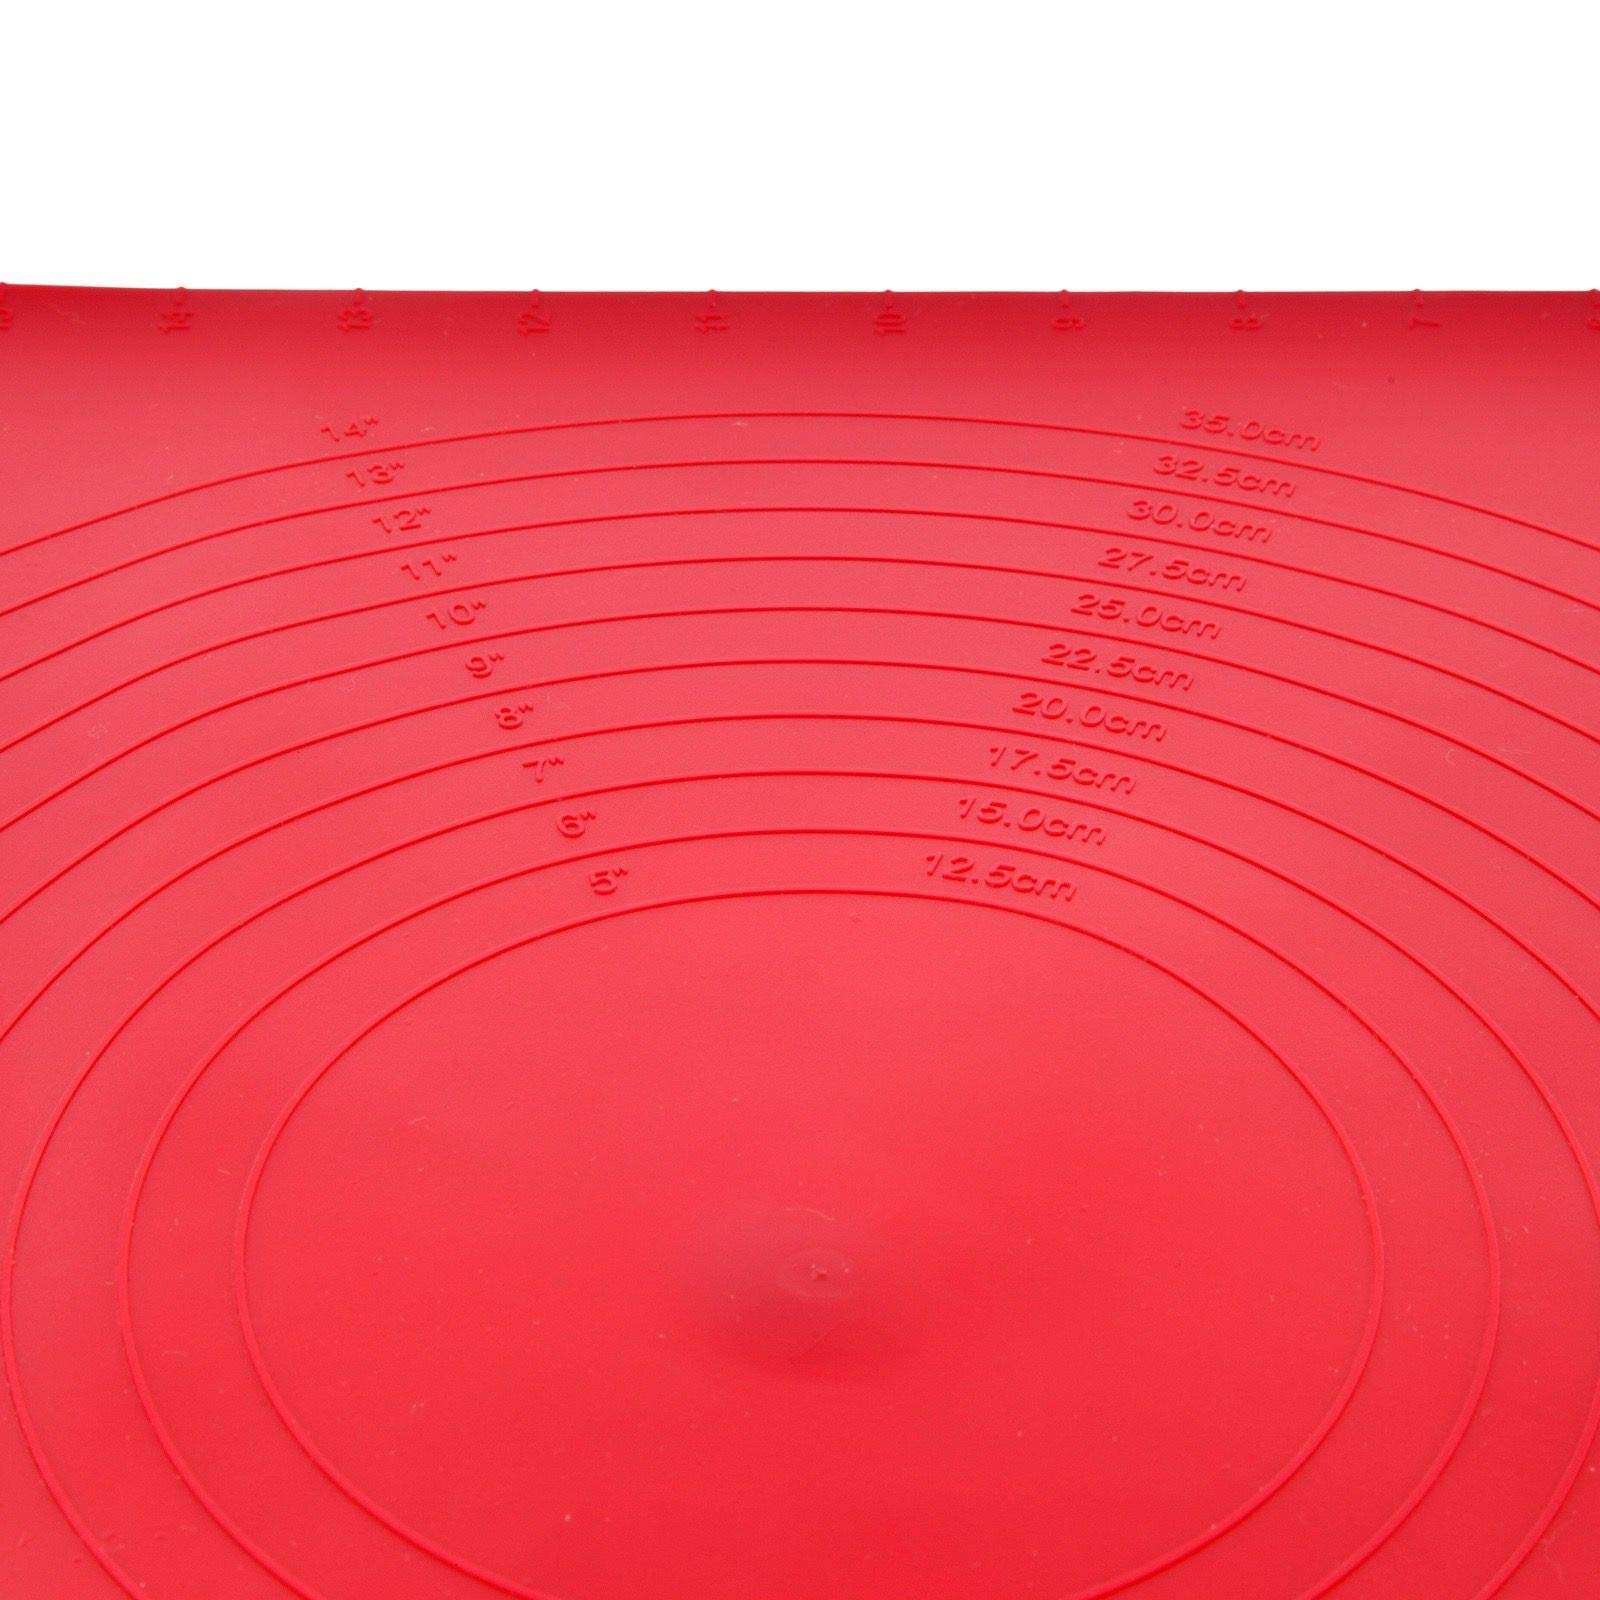 Westmark 30182260 Dough Rolling-Out Mat, 24.2 x 16.4 inches, Silicone by Westmark (Image #3)